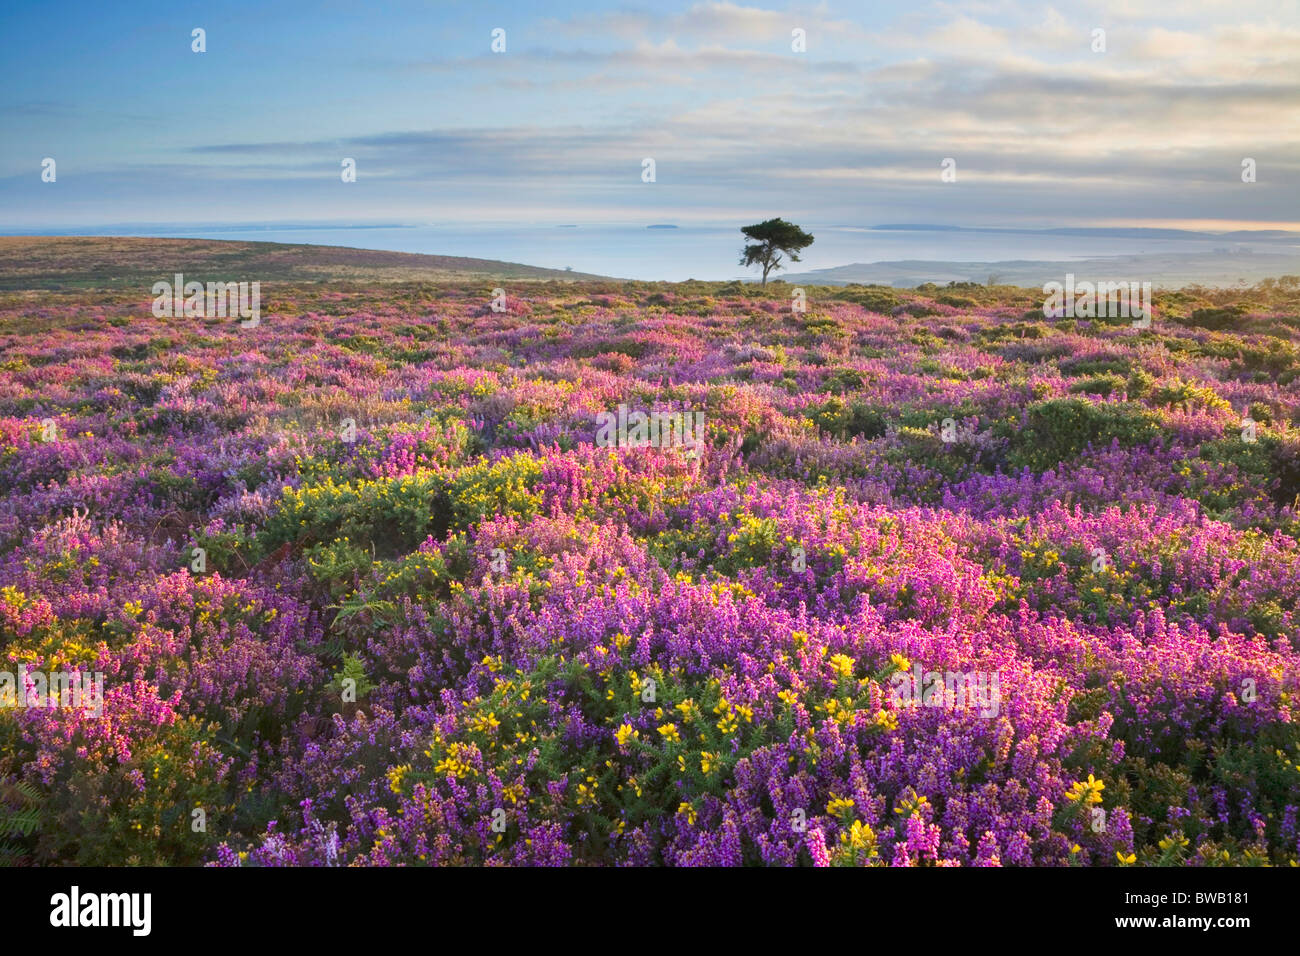 Heather and gorse bloom on the quantock hills looking towards the heather and gorse bloom on the quantock hills looking towards the bristol channel somerset england kristyandbryce Gallery